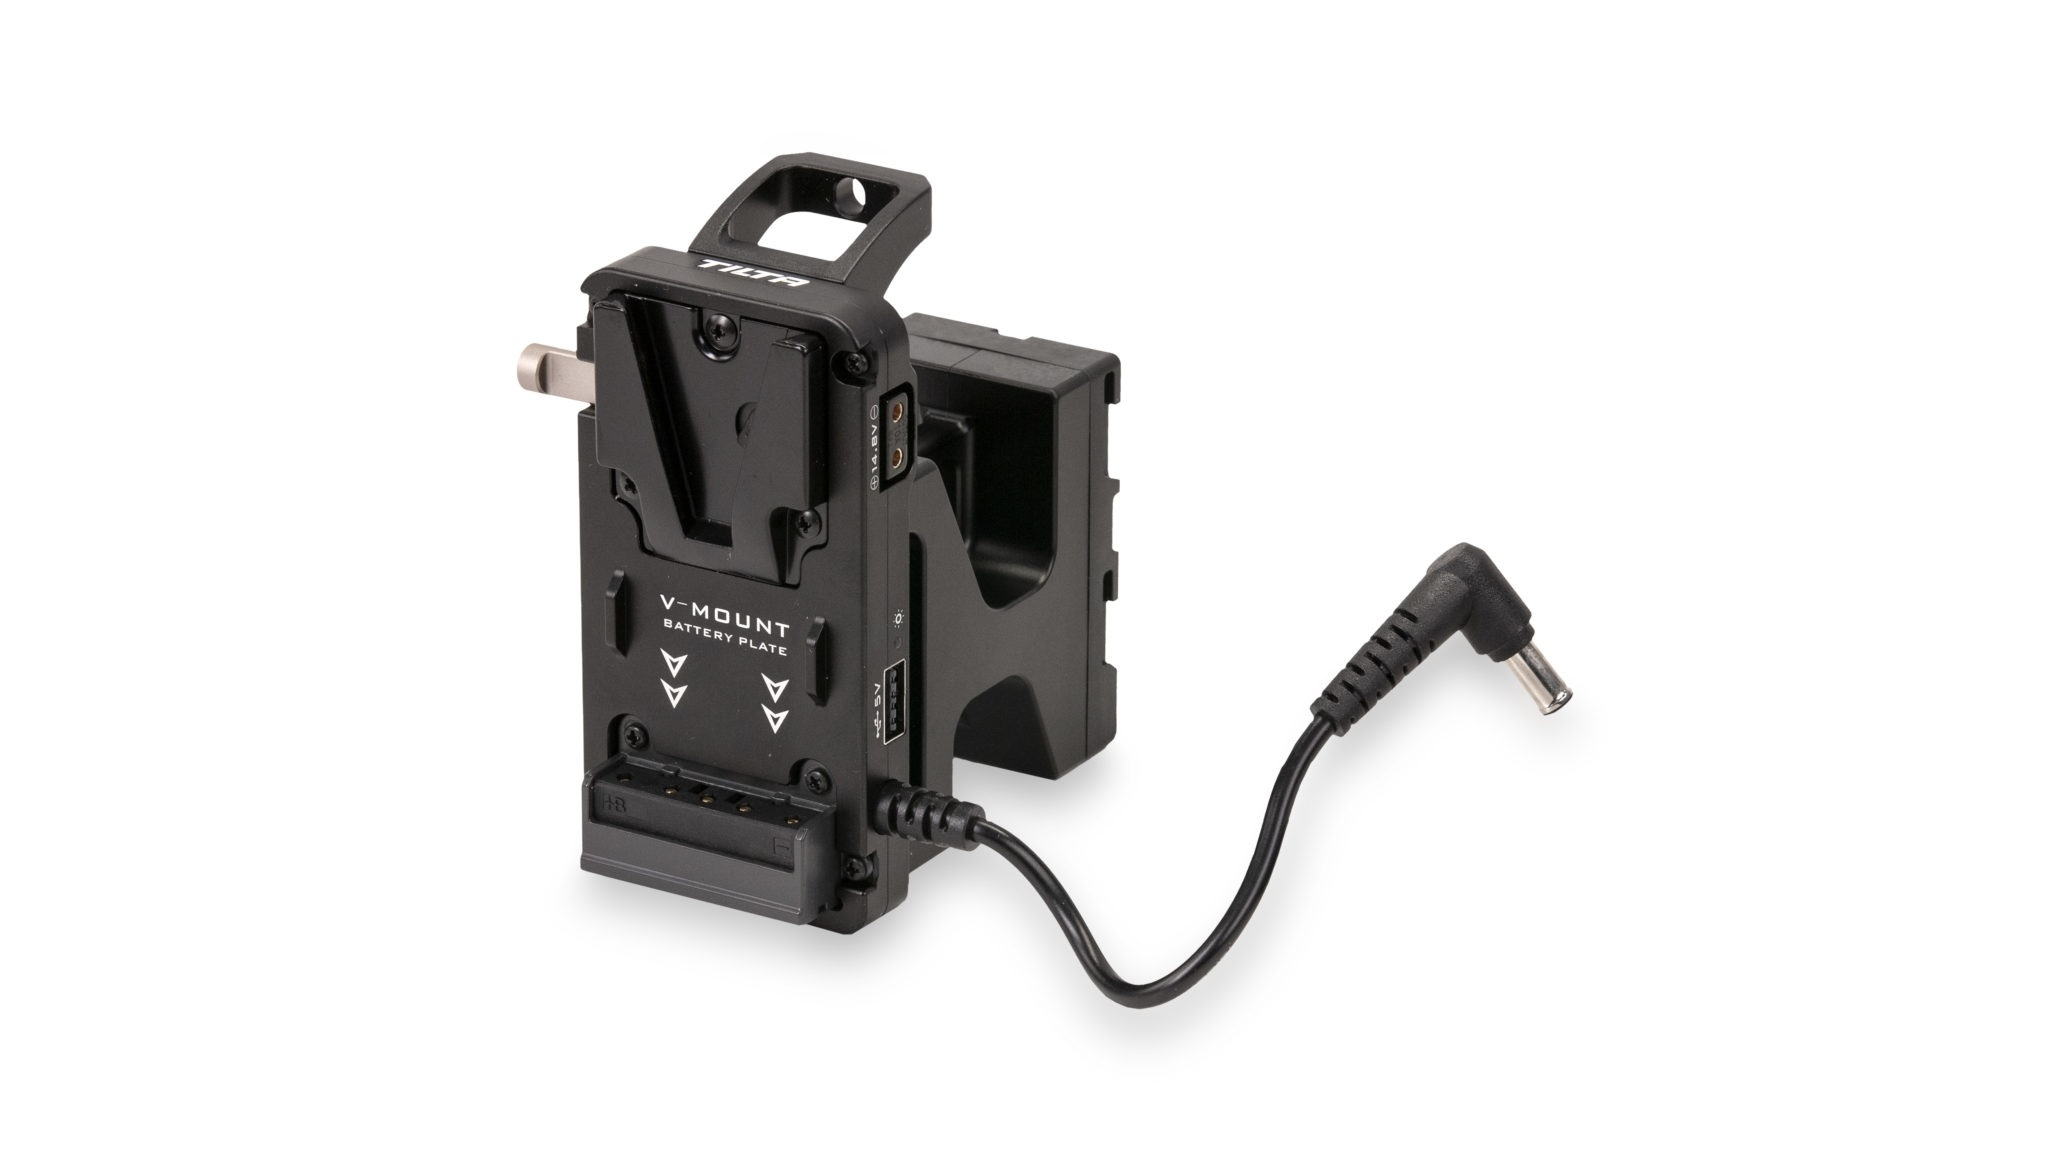 Tilta Battery Plate for Sony FX6 - V Mount